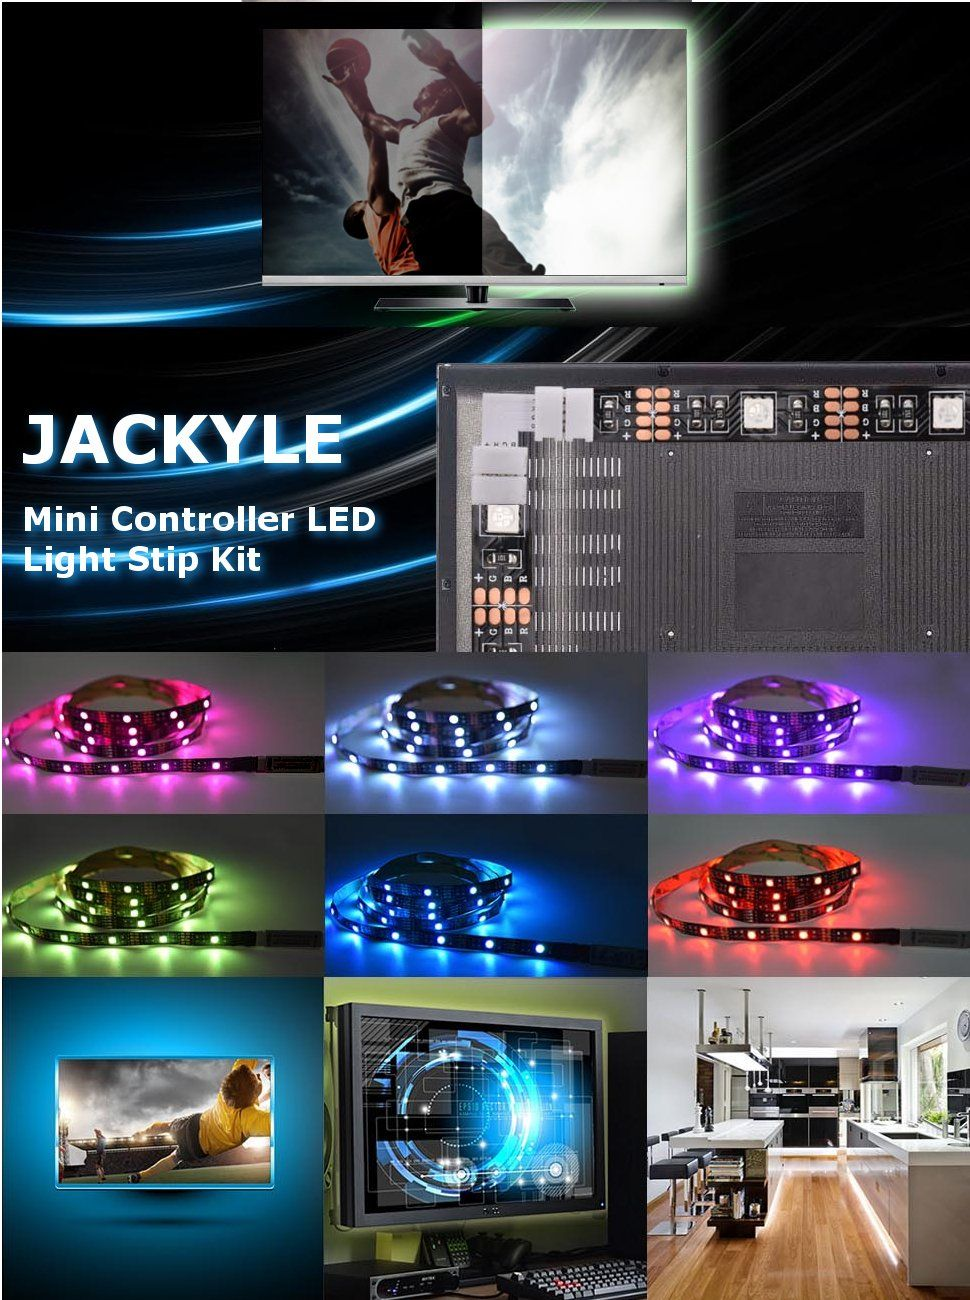 Tv led light strip jackyled 66ft 60leds led tv backlight strip usb tv led light strip jackyled 66ft 60leds led tv backlight strip usb bias monitor lighting aloadofball Gallery